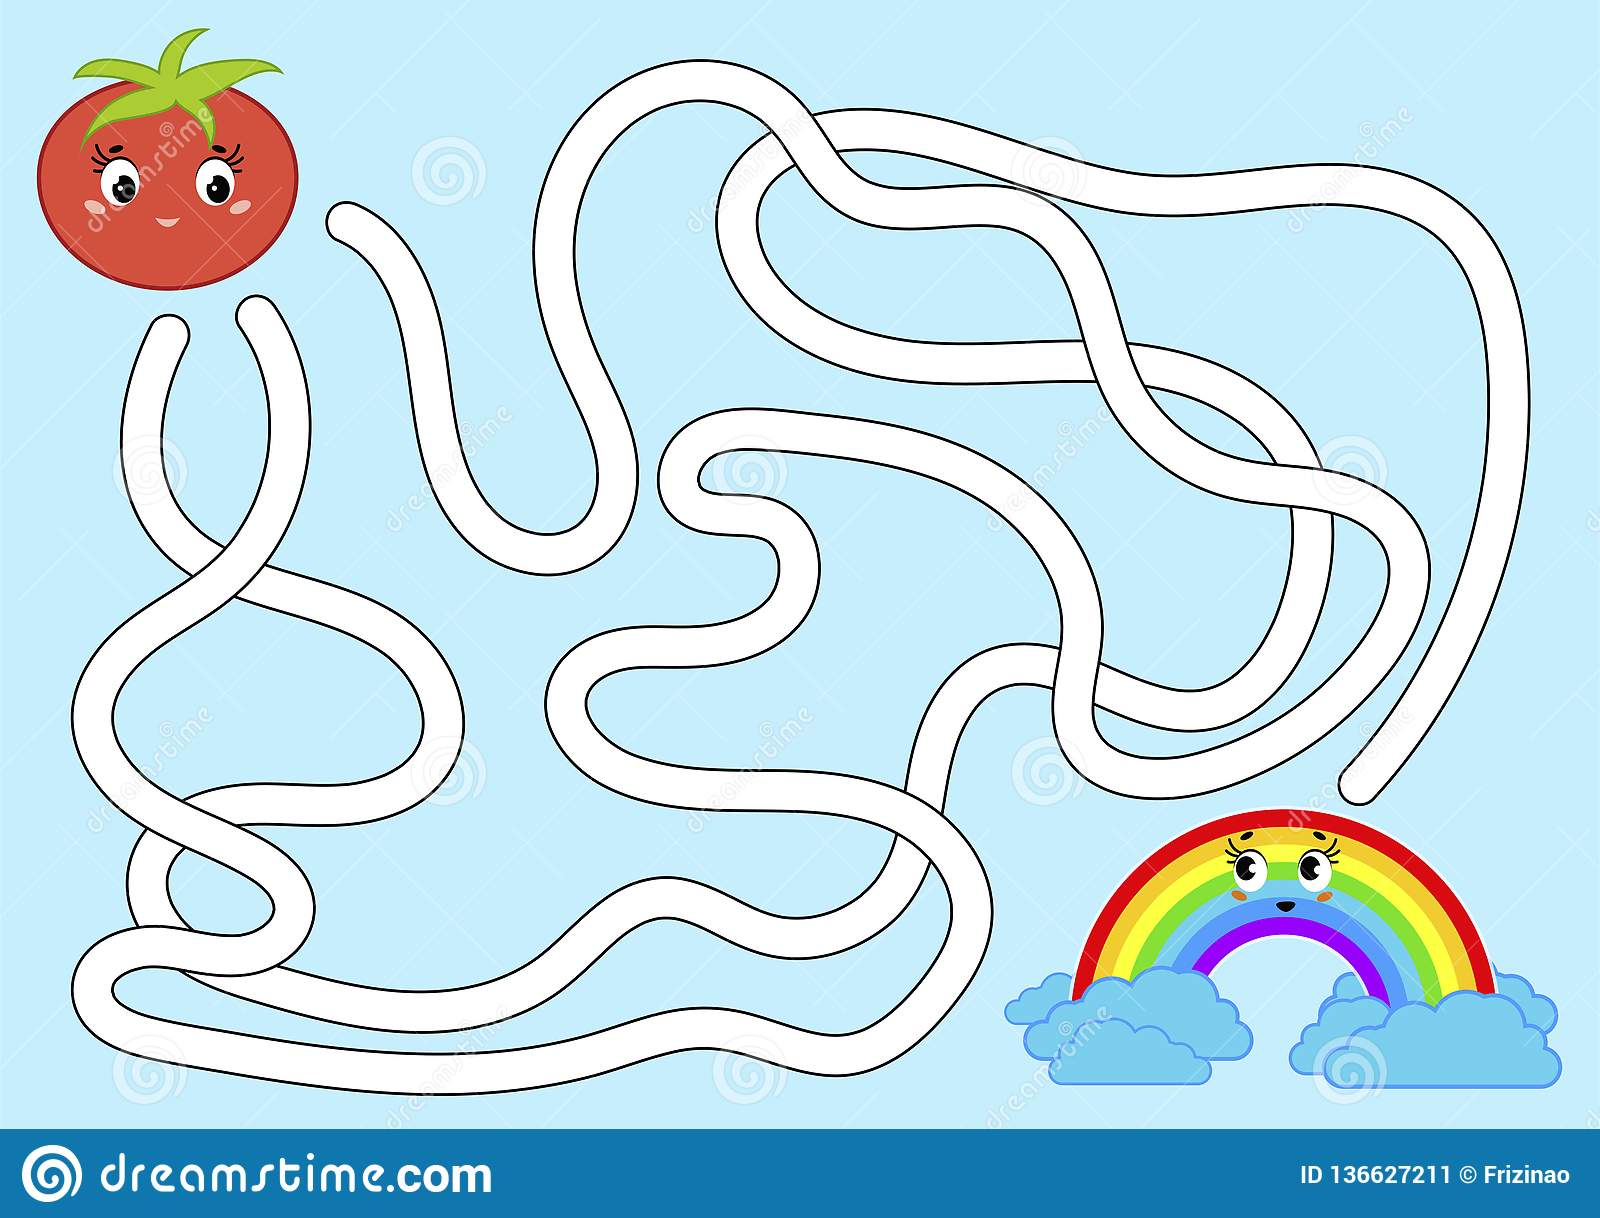 Color Abstract Maze Help The Tomato Get To The Rainbow